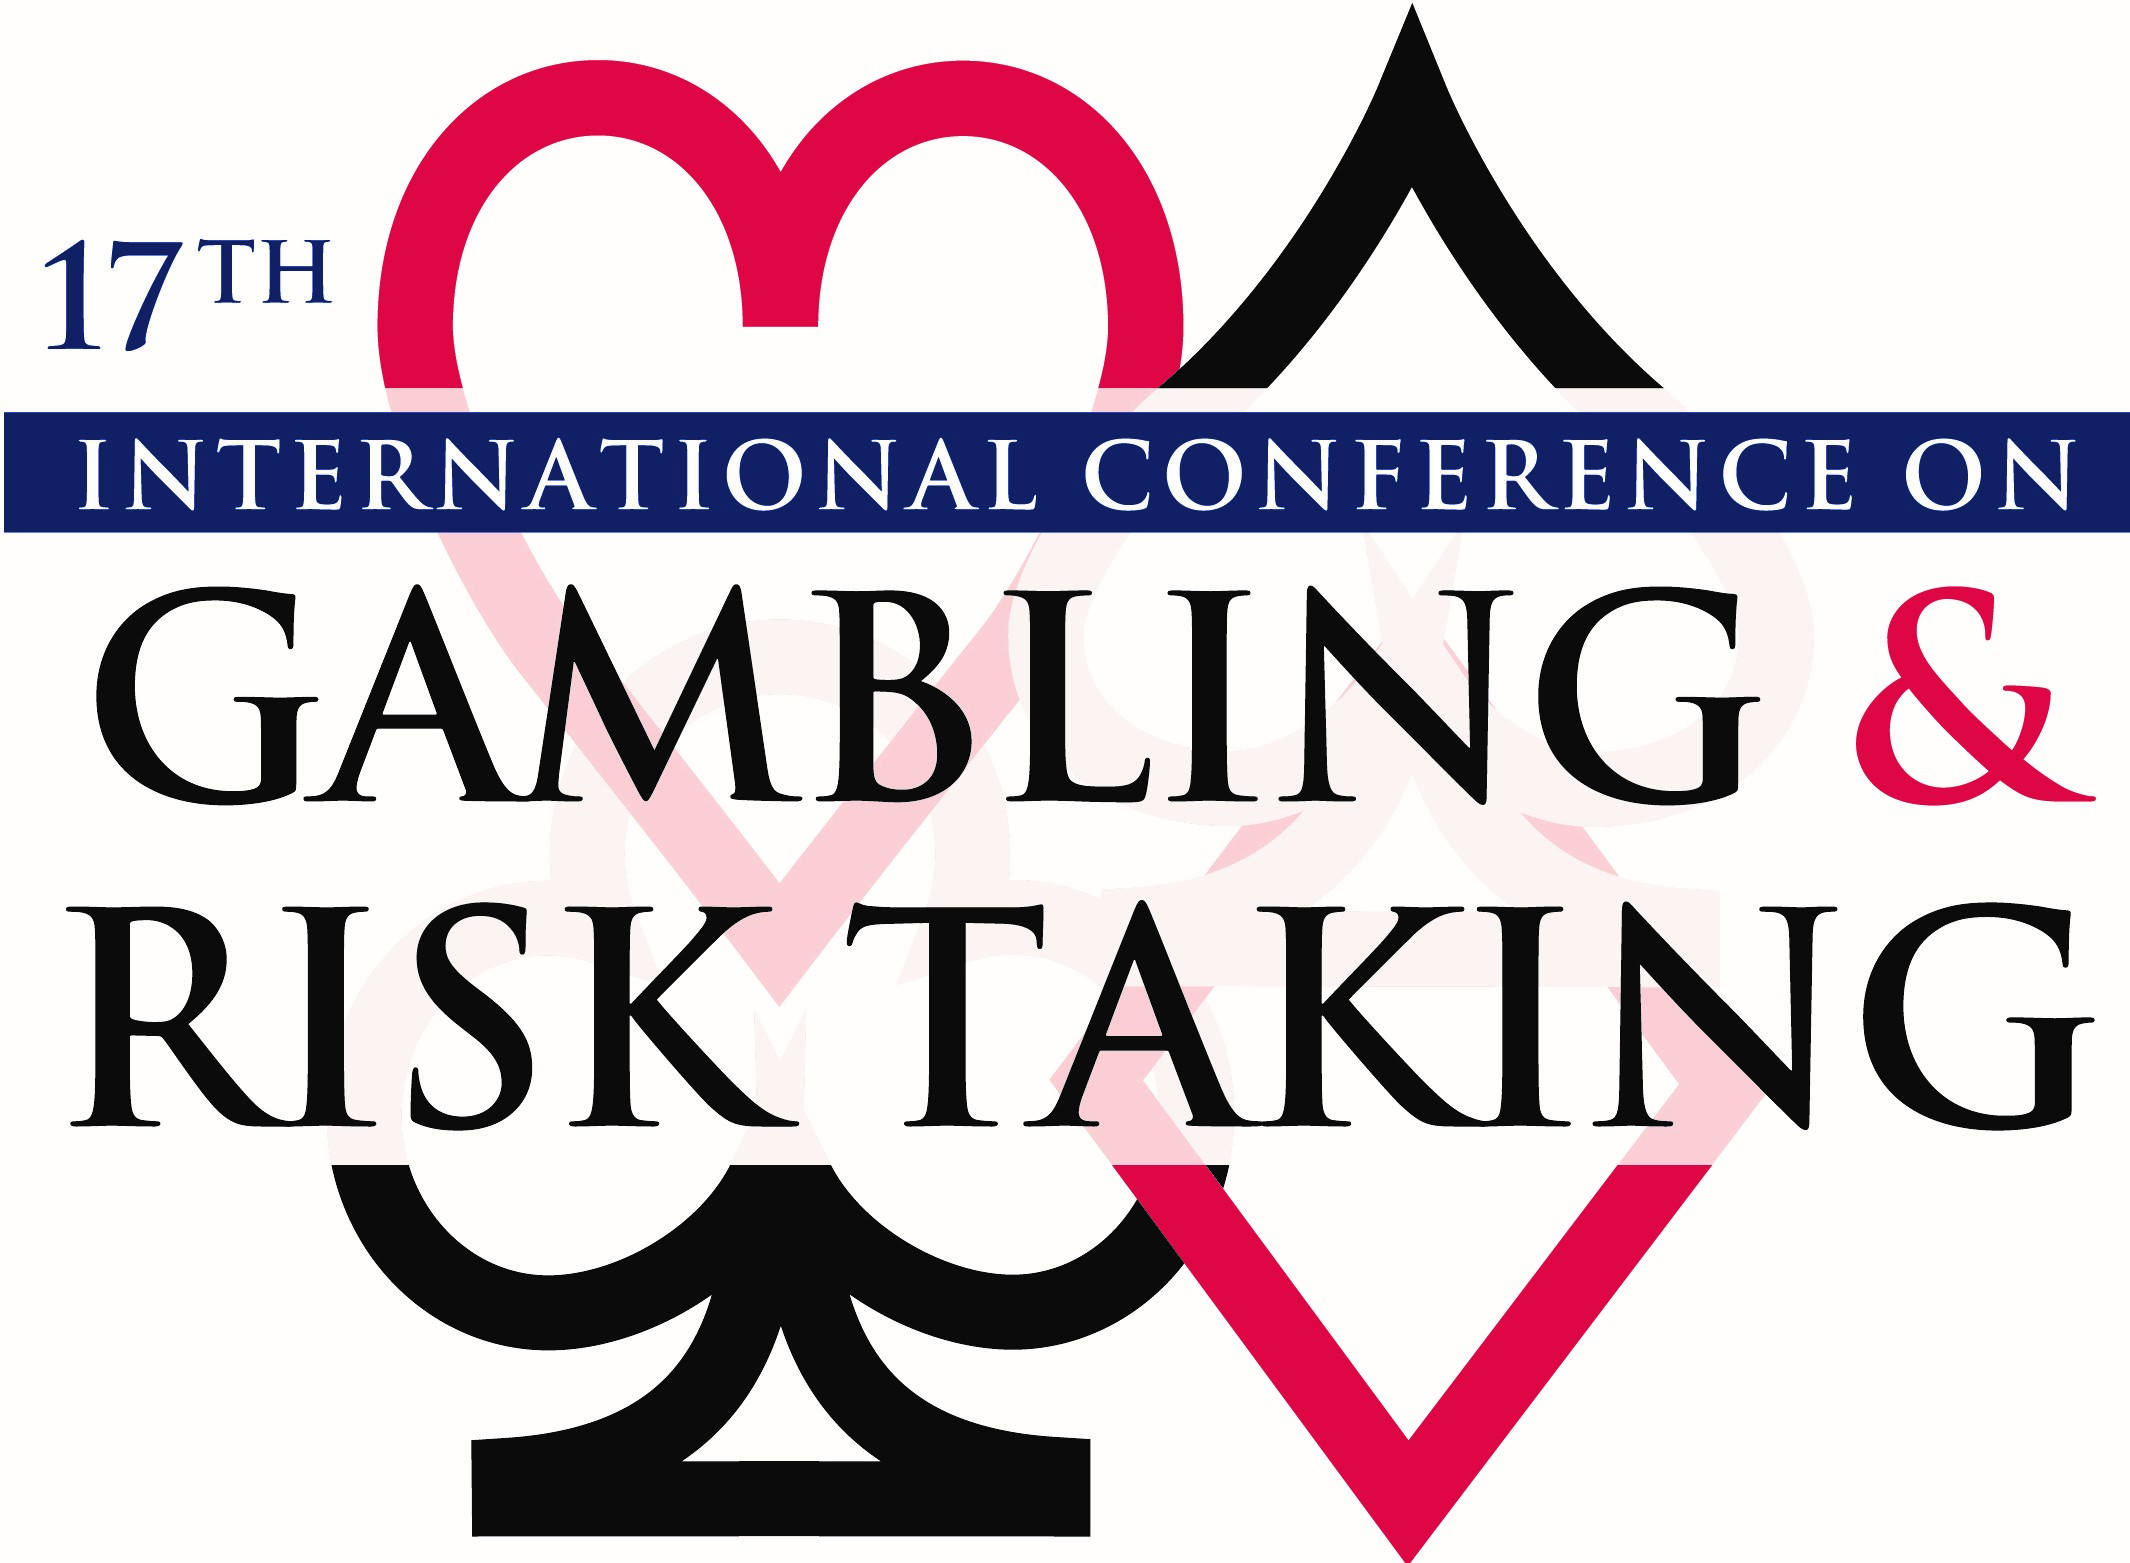 17th International Conference on Gambling & Risk Taking